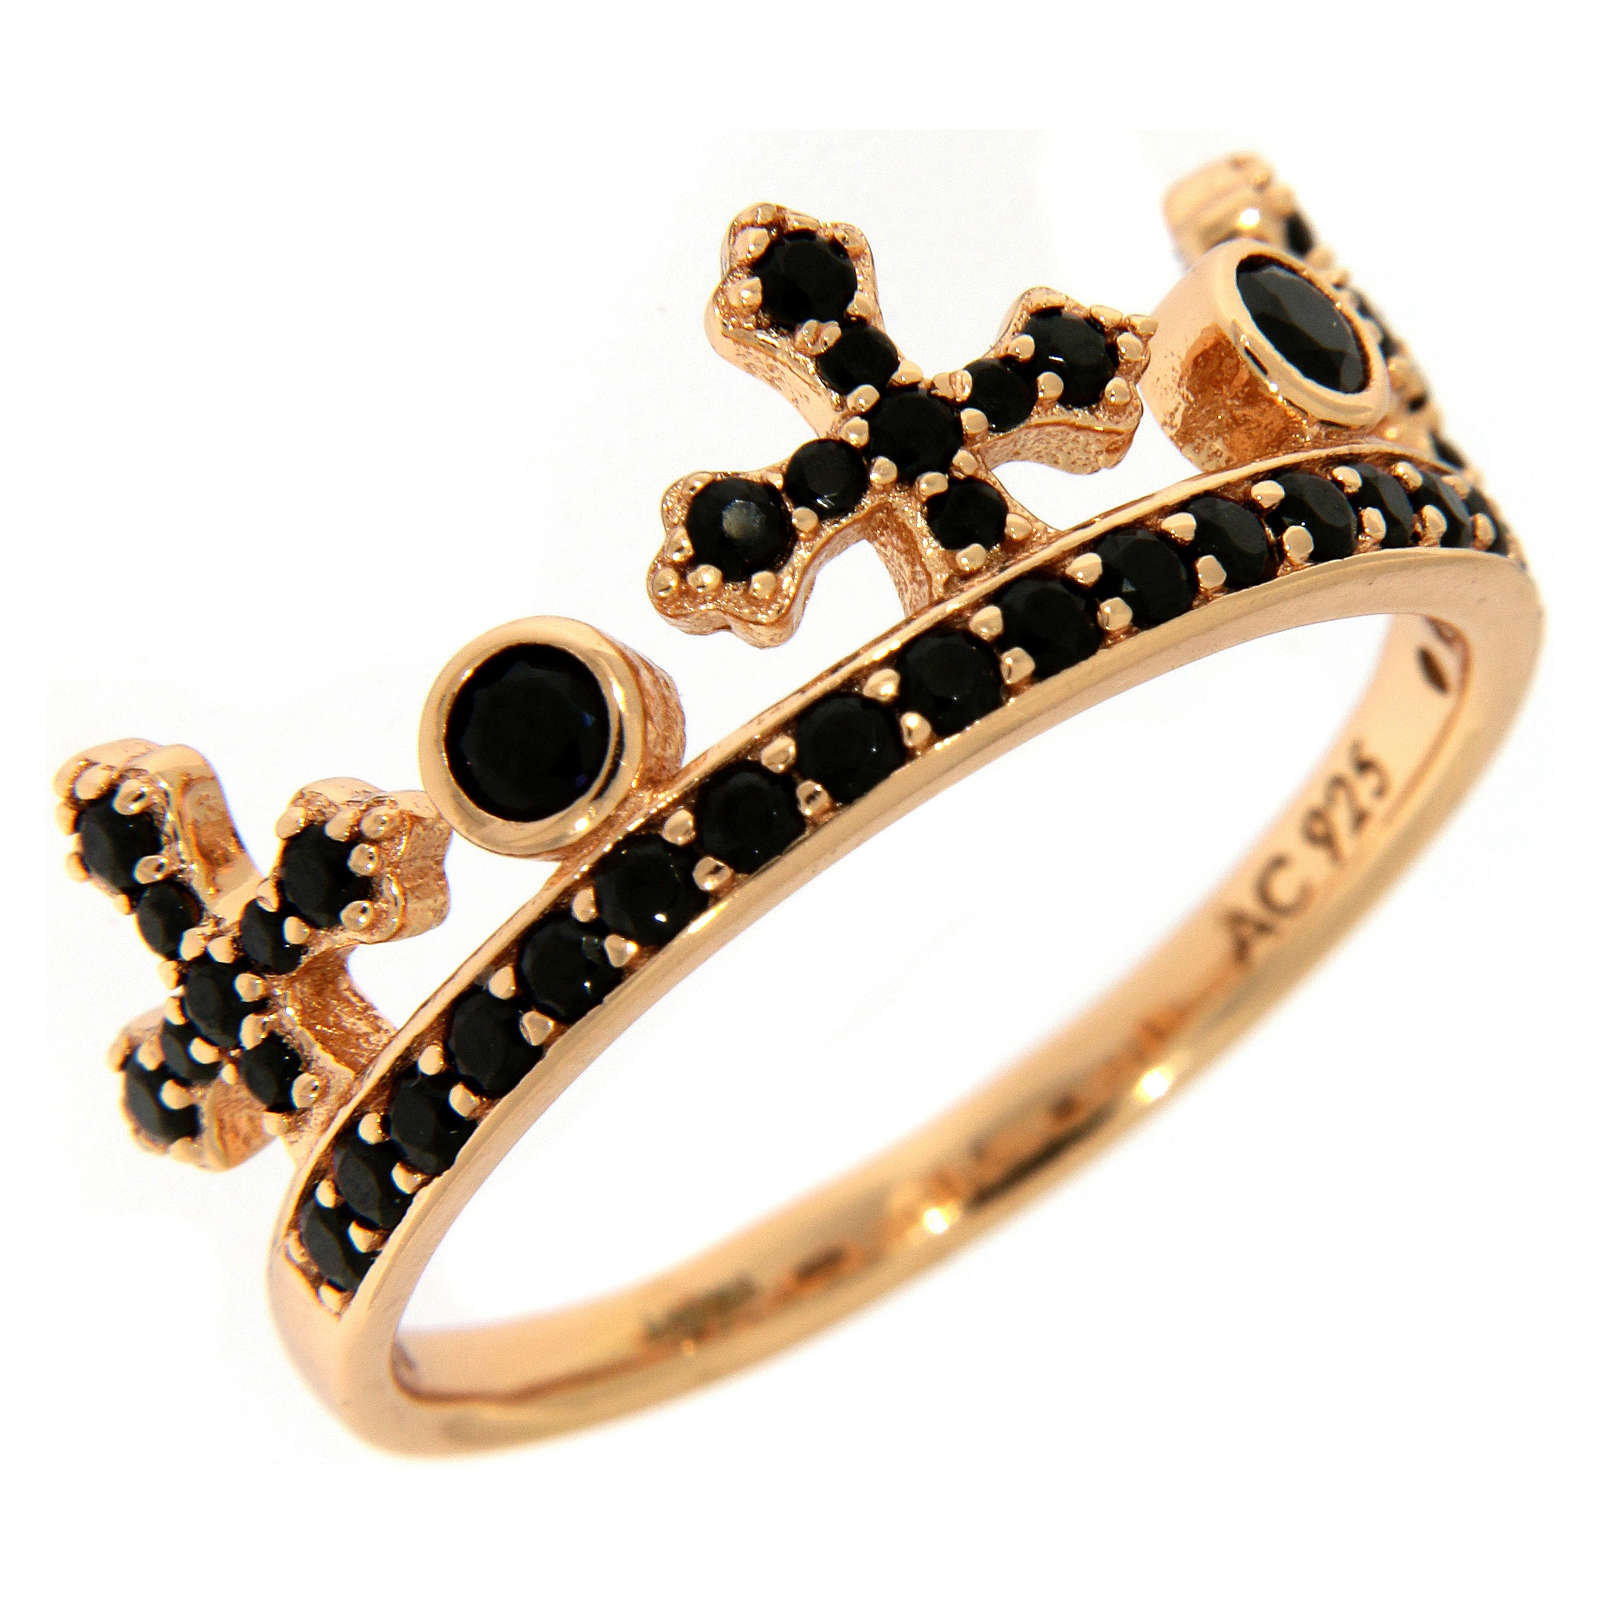 Ring AMEN 925 silver with rose three pointed black cubic zirconia crown 3